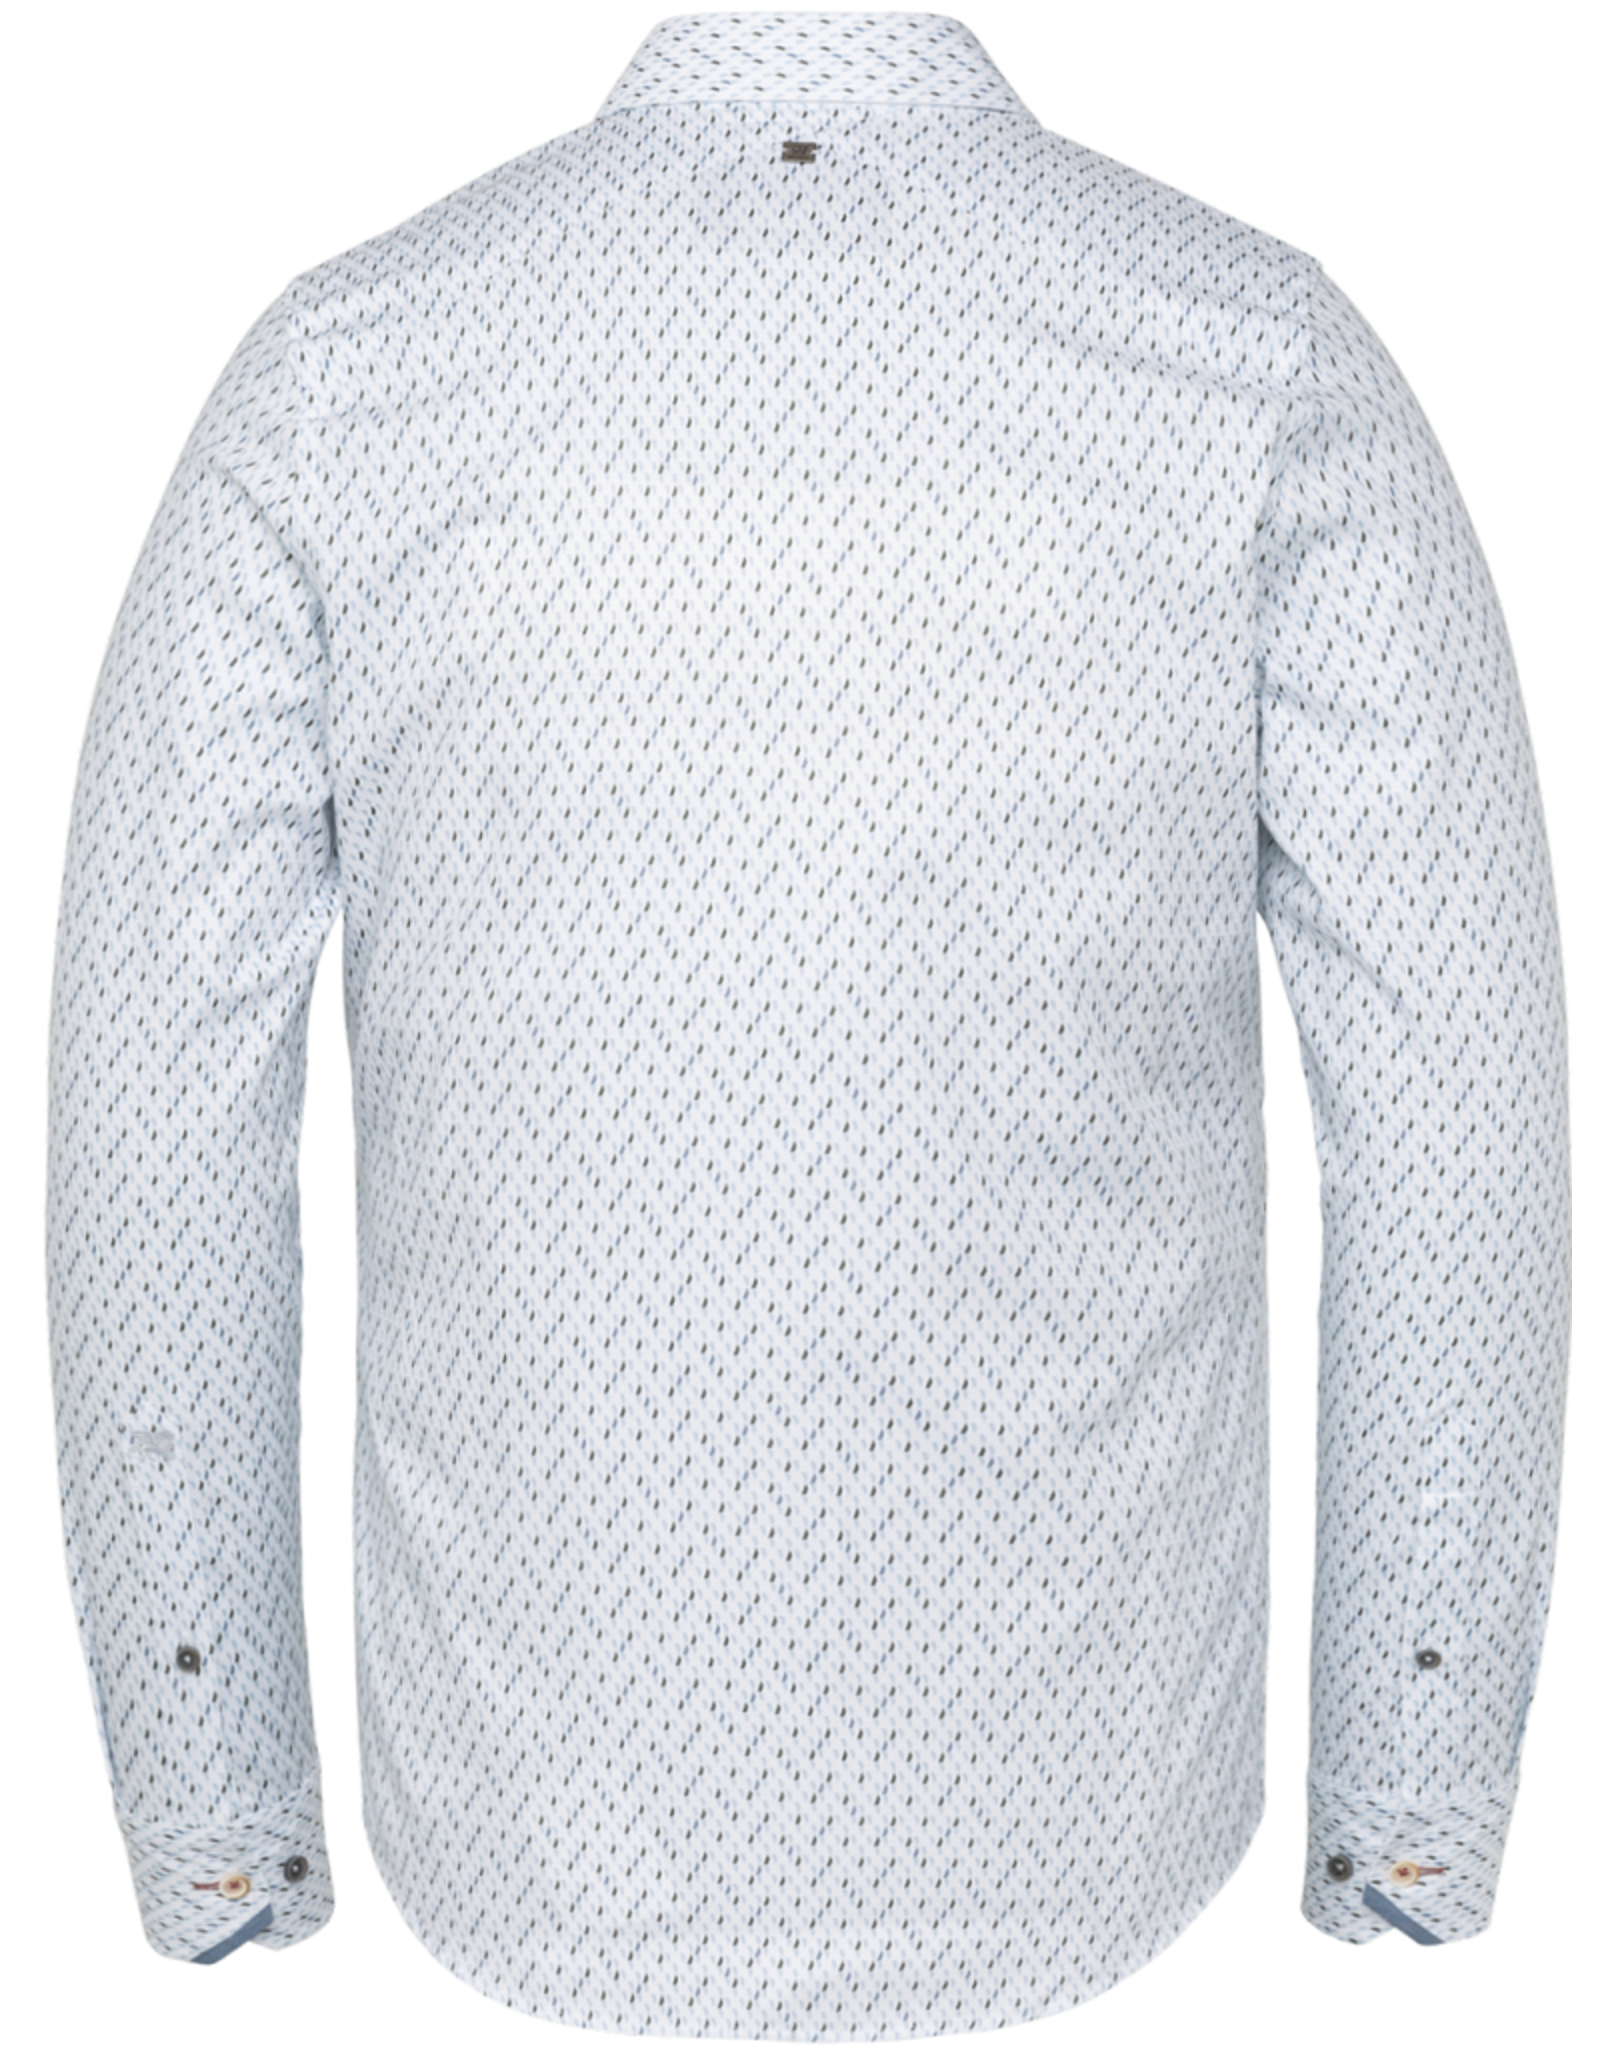 Vanguard Vanguard long sleeves structure fabric small print bright white